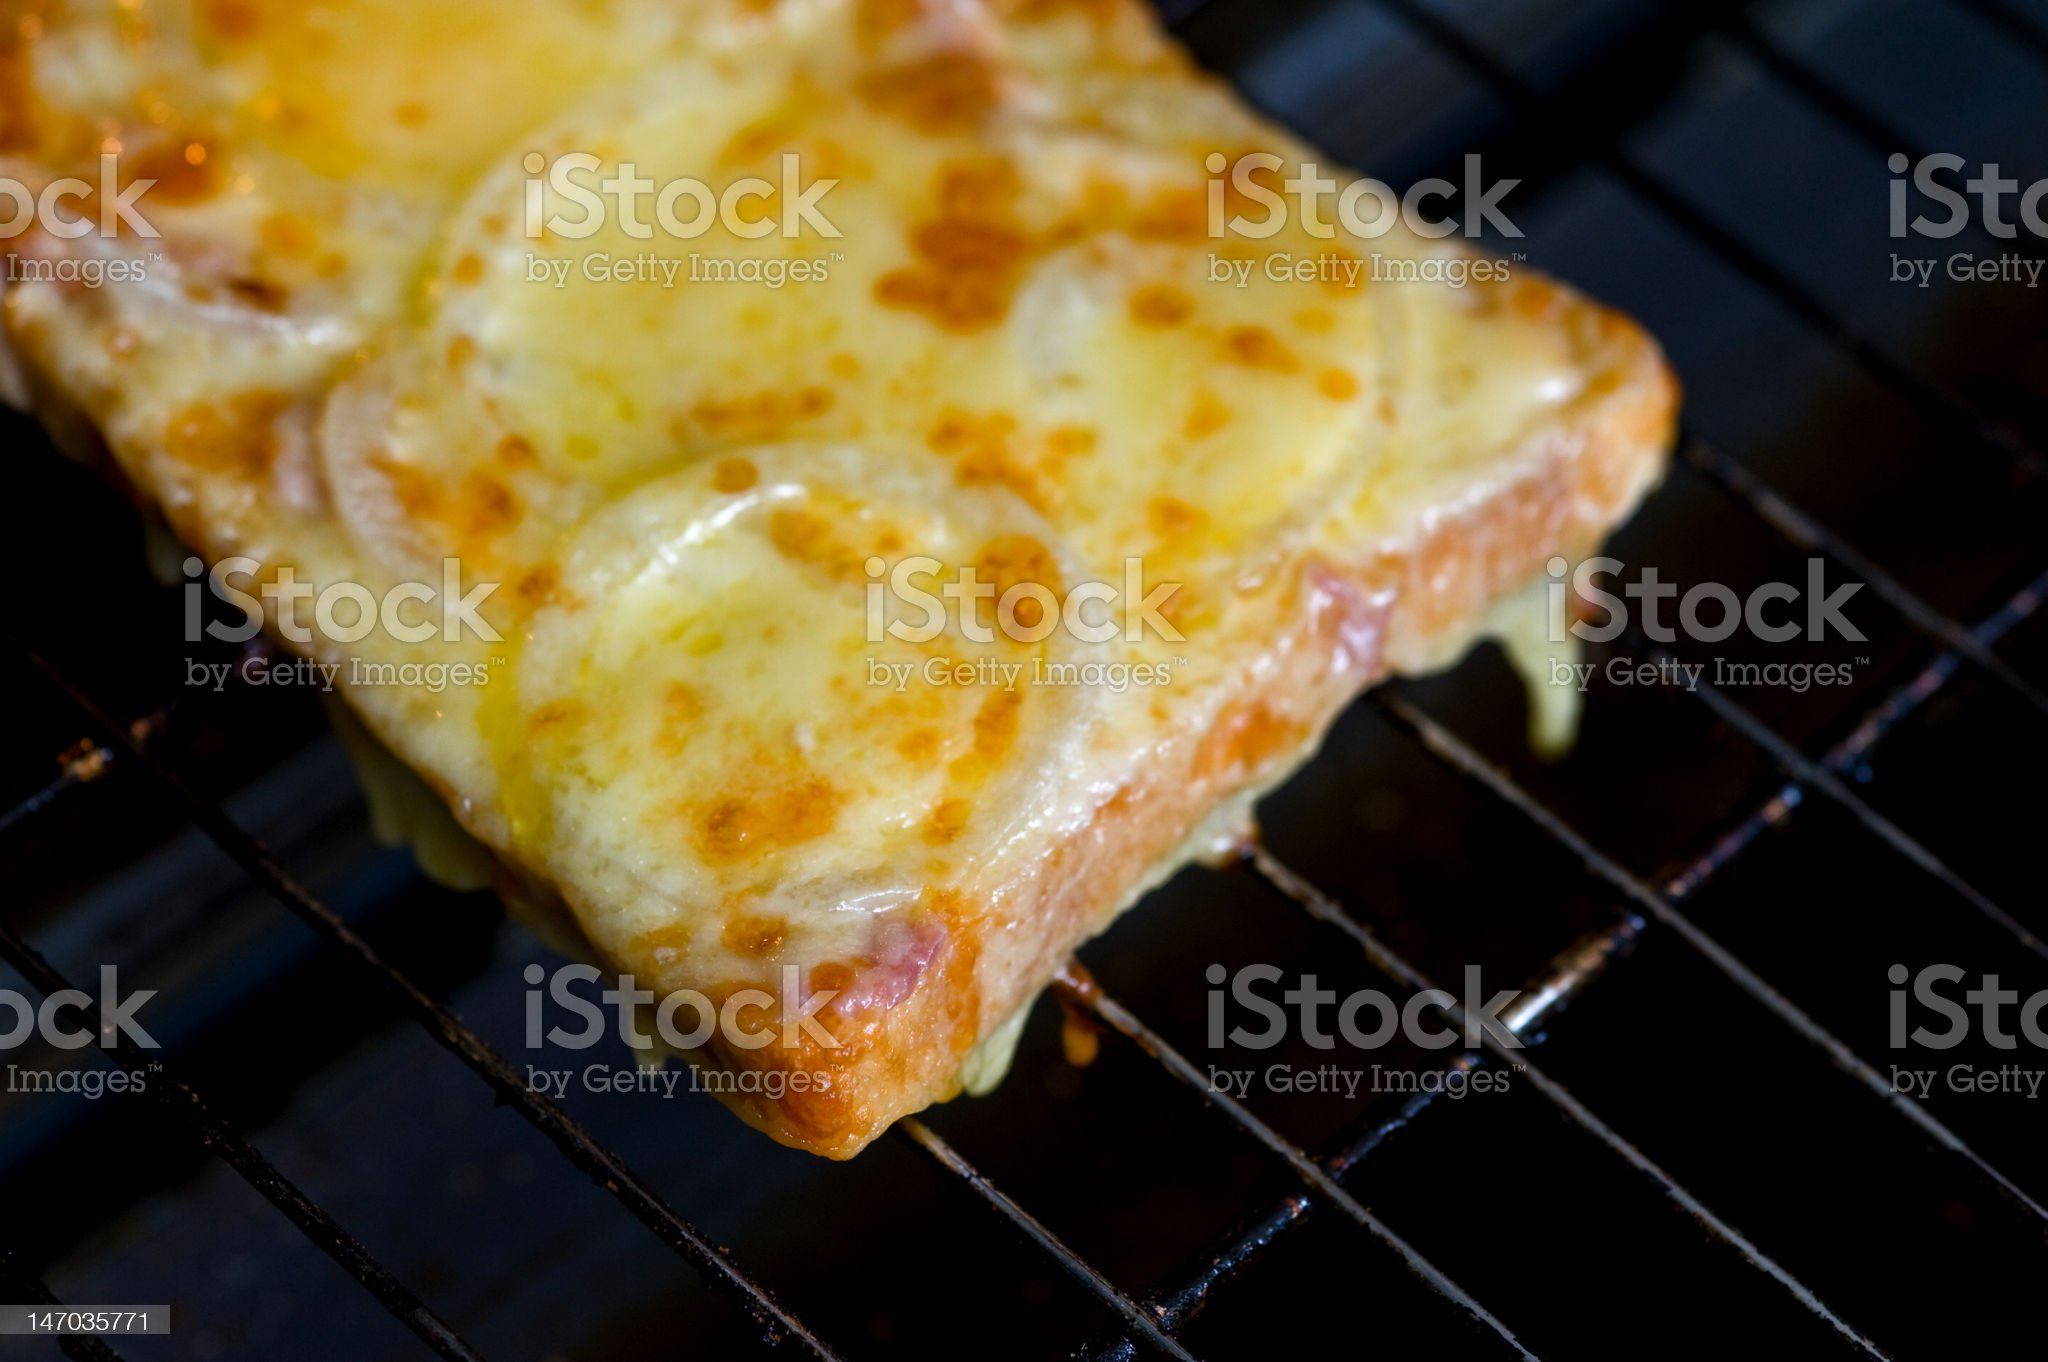 Grilled Cheese and Onion Melt on bread royalty-free stock photo